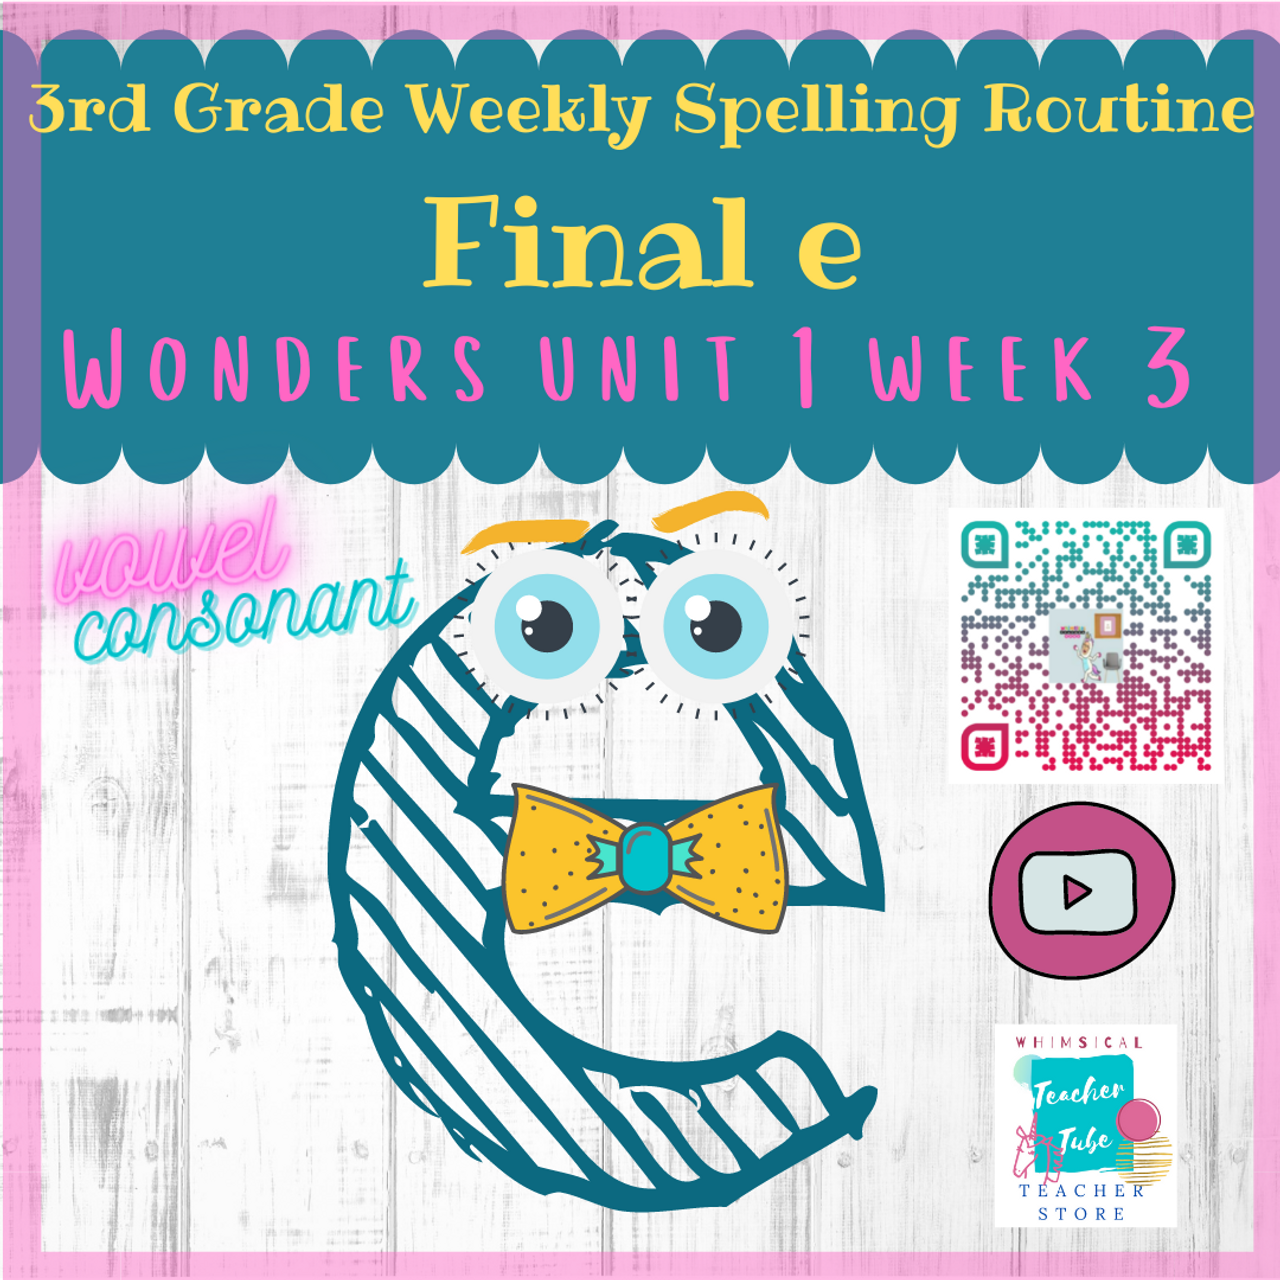 3rd Grade Weekly Spelling Routine-Final e